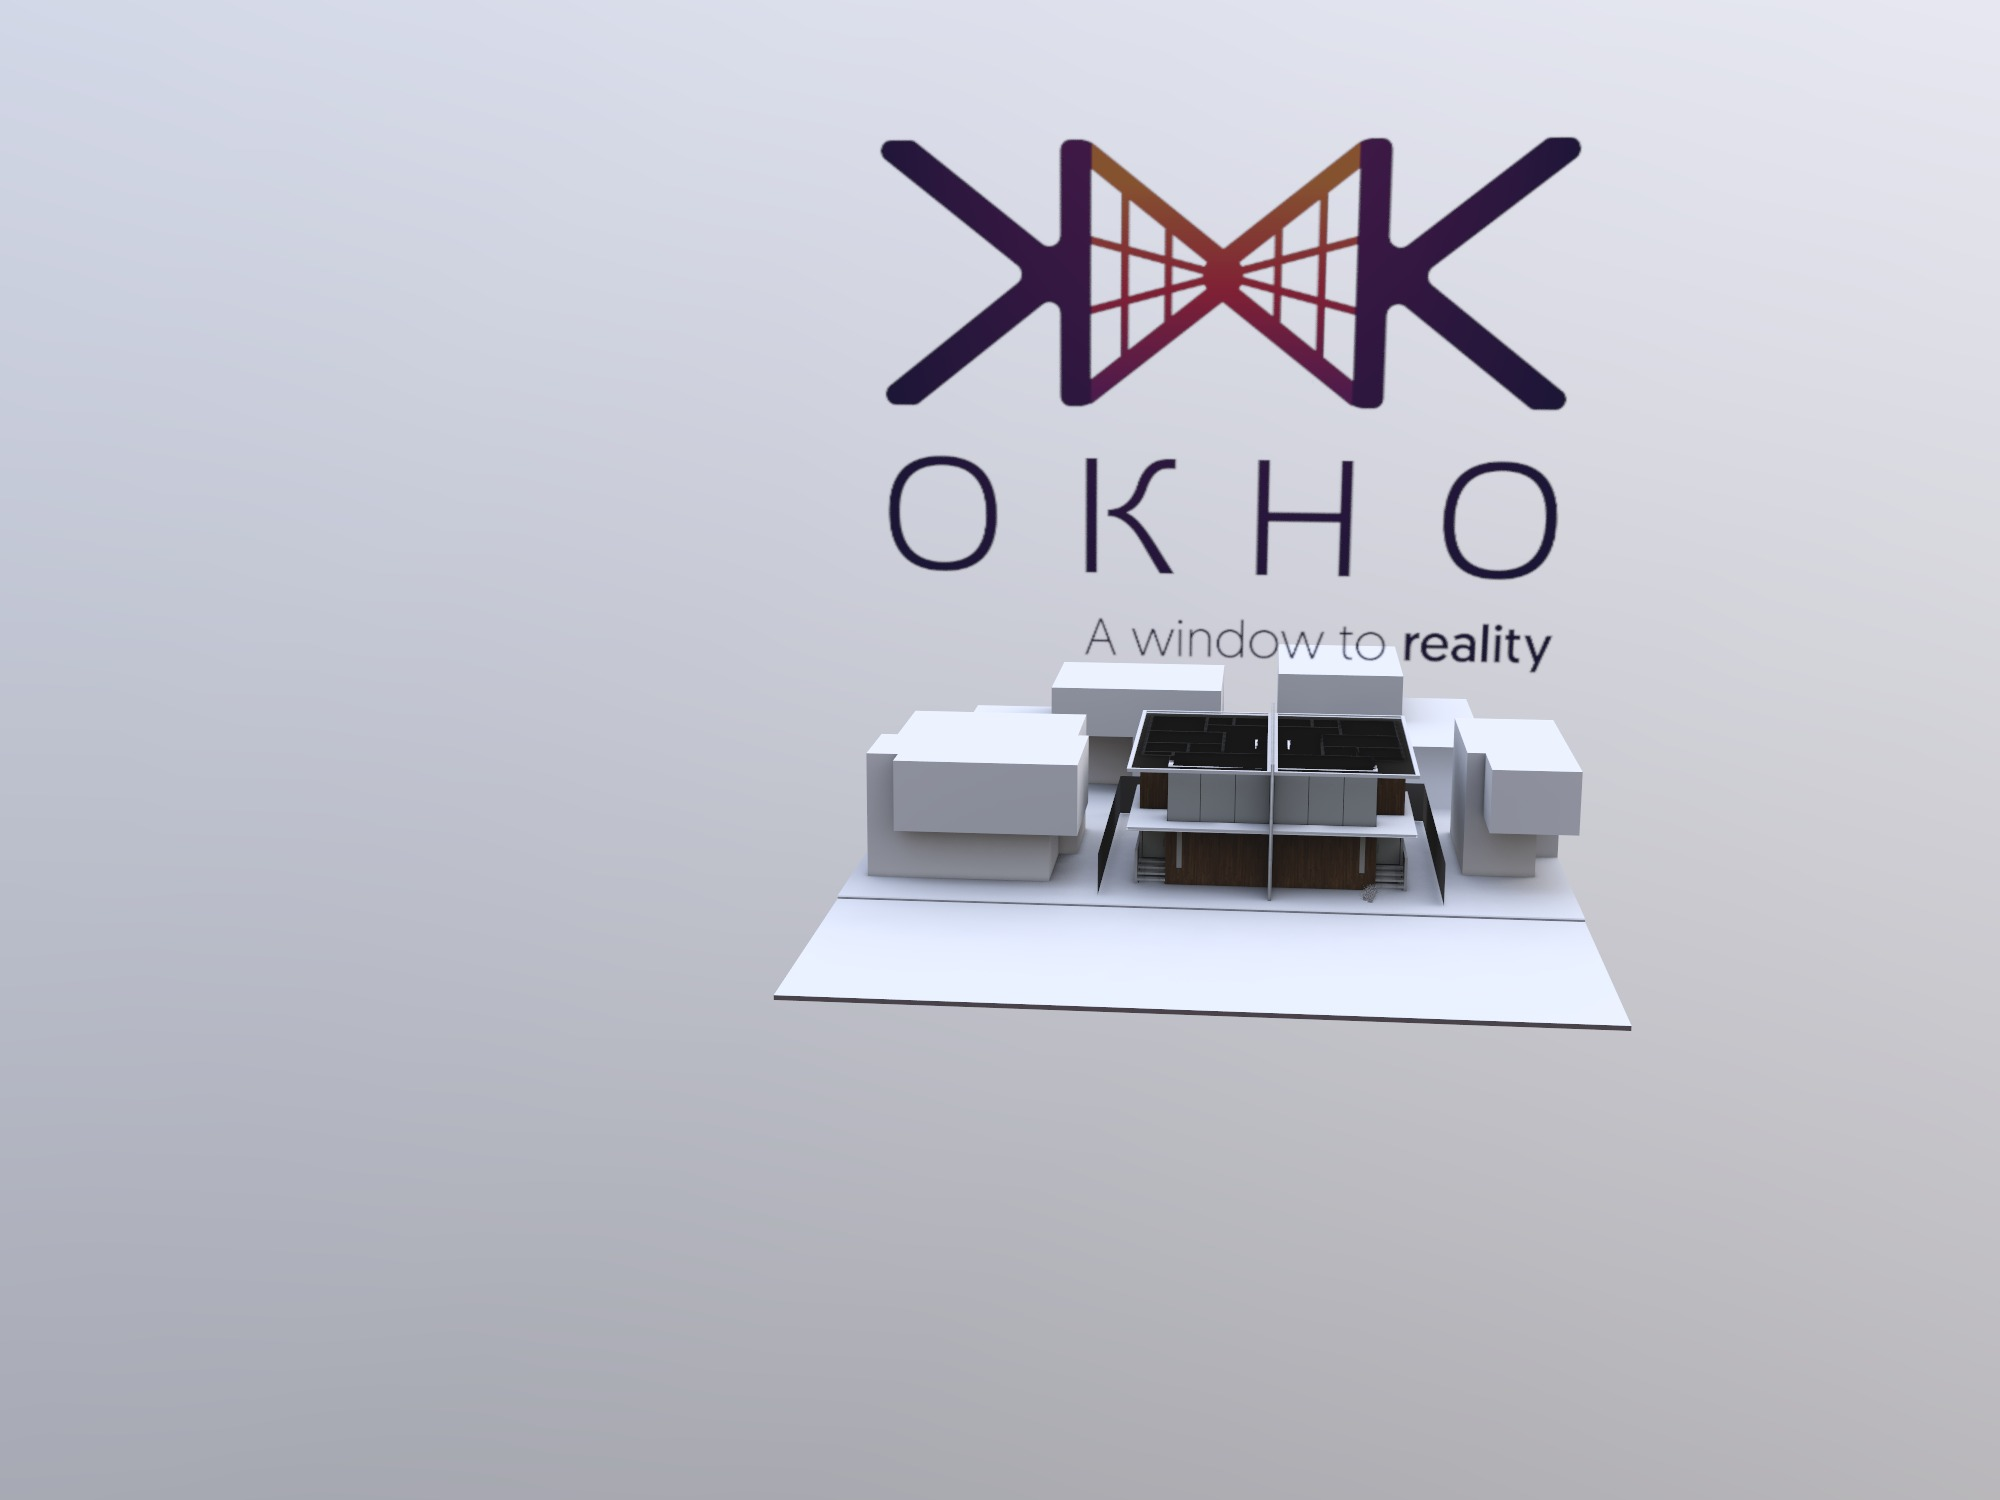 okho3d - 3D design by Carlos Avella on Oct 21, 2018